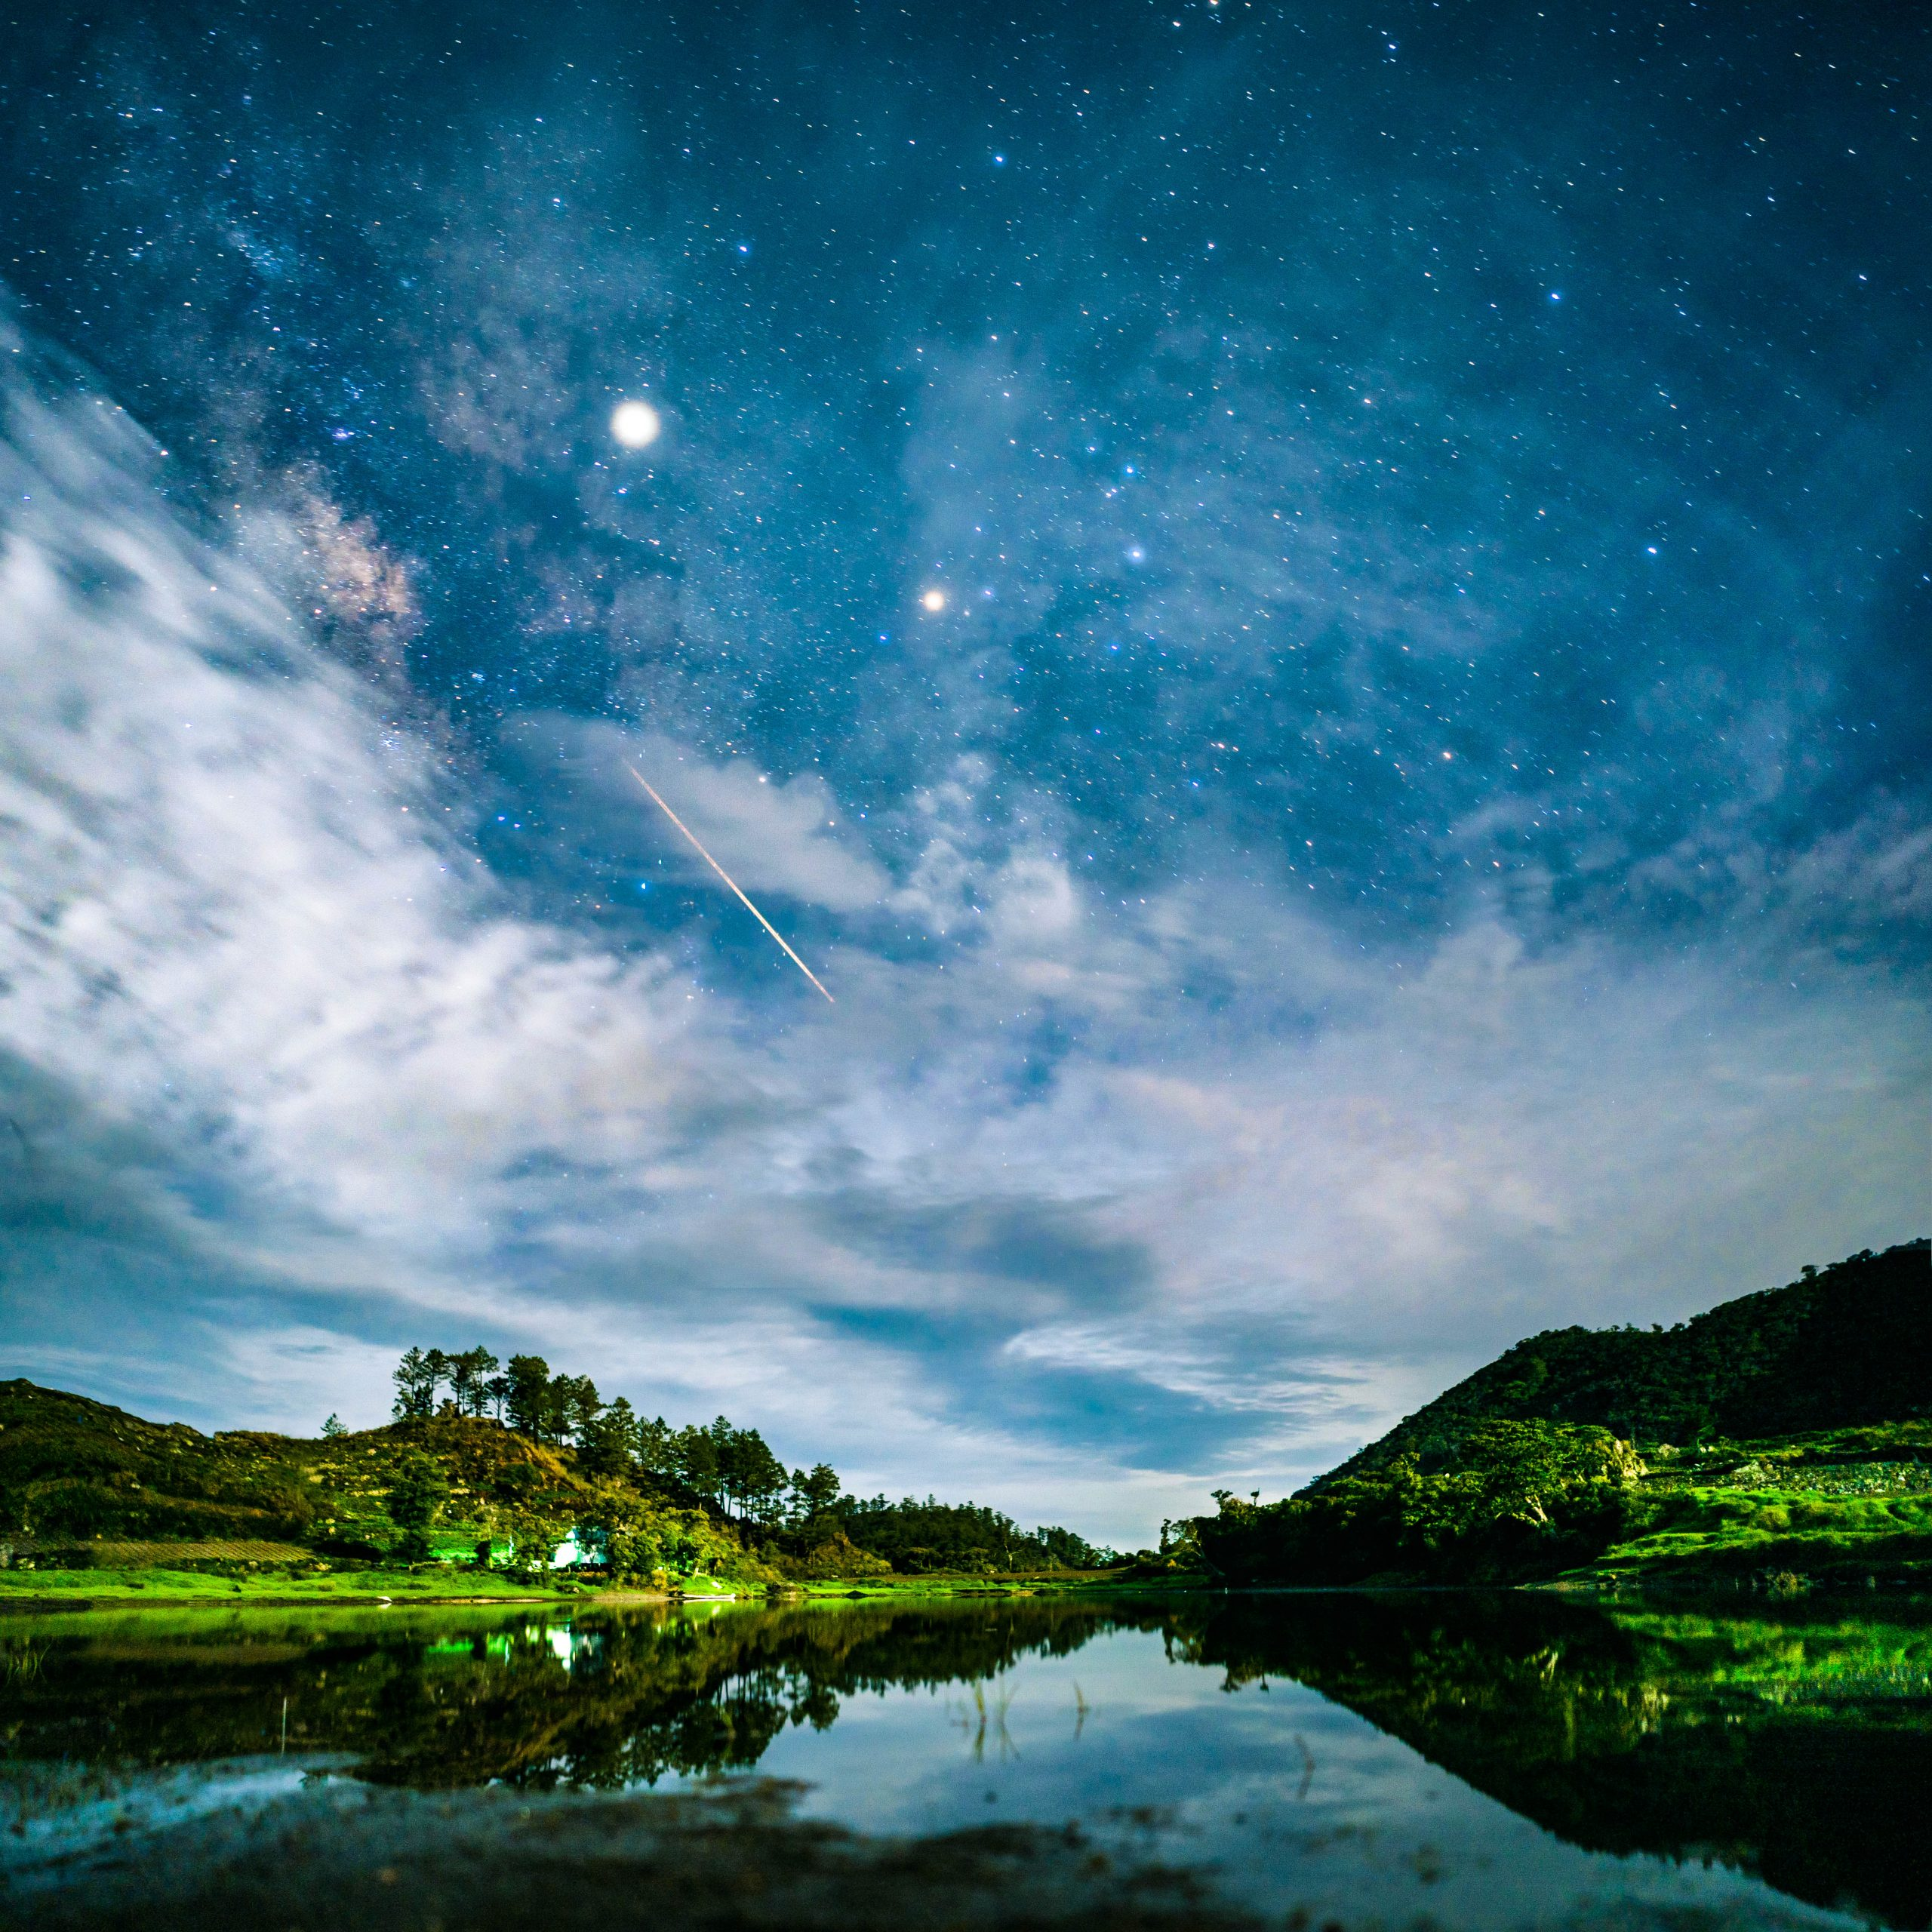 A view of a lake beneath a night sky full of stars